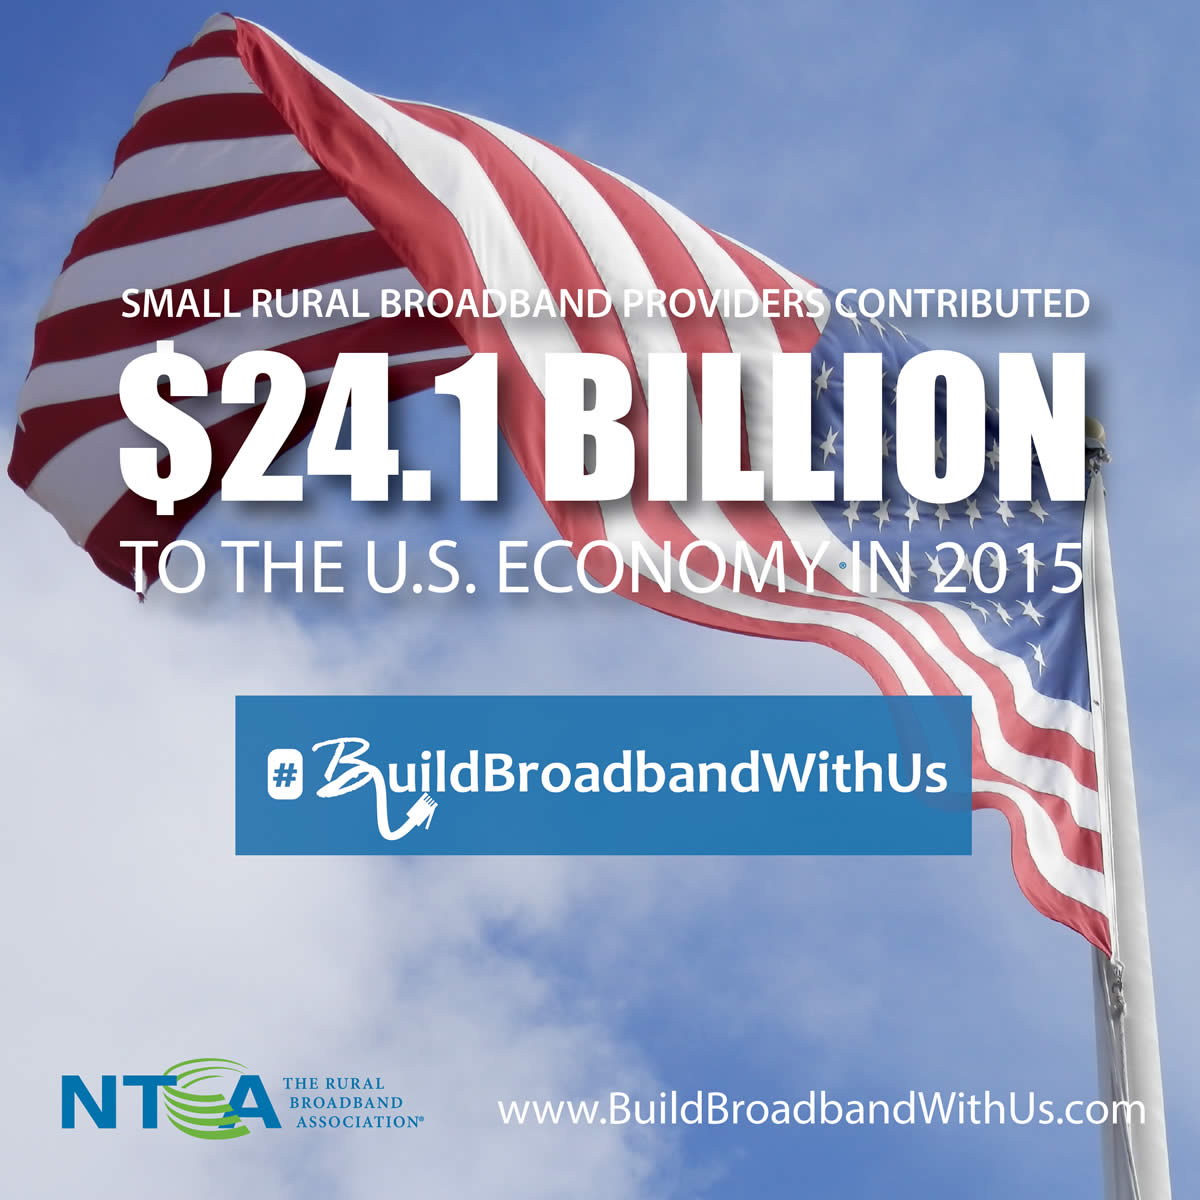 Small rural broadband providers contributed $24.1 Billion to the U.S. economy in 2015